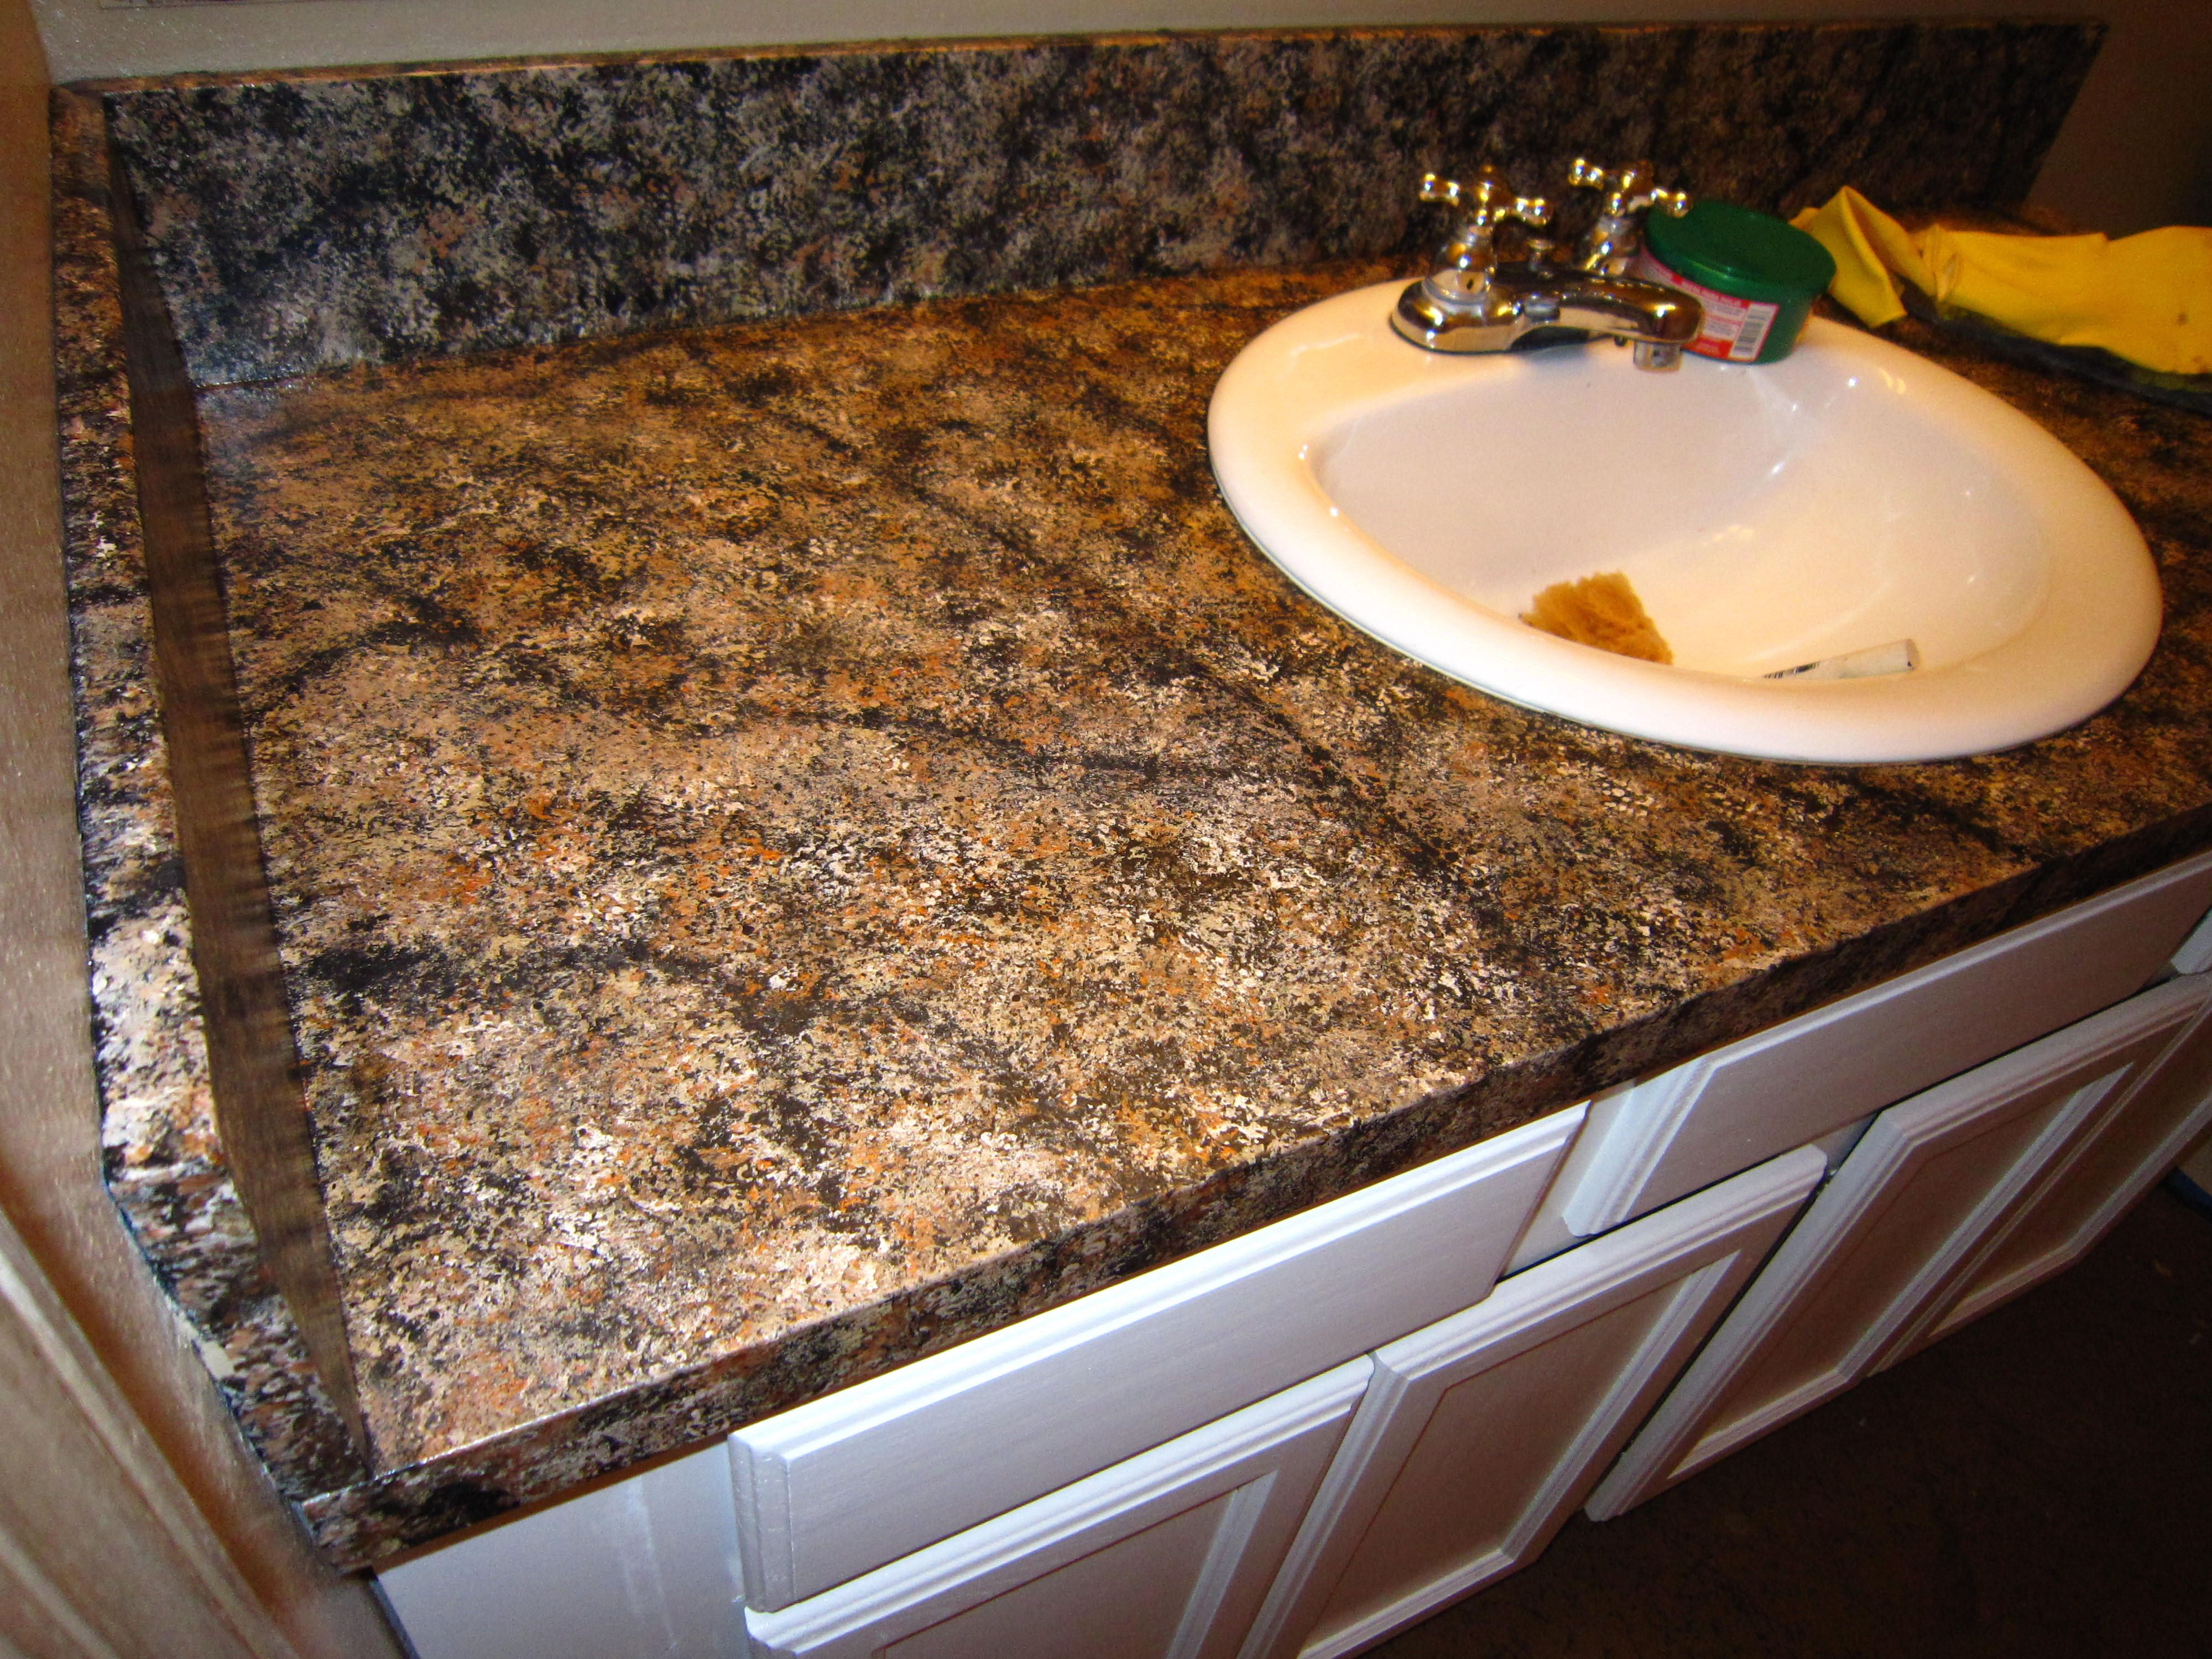 Ugly Granite Countertops Diy Faux Granite Countertop Without A Kit For Under 60 For